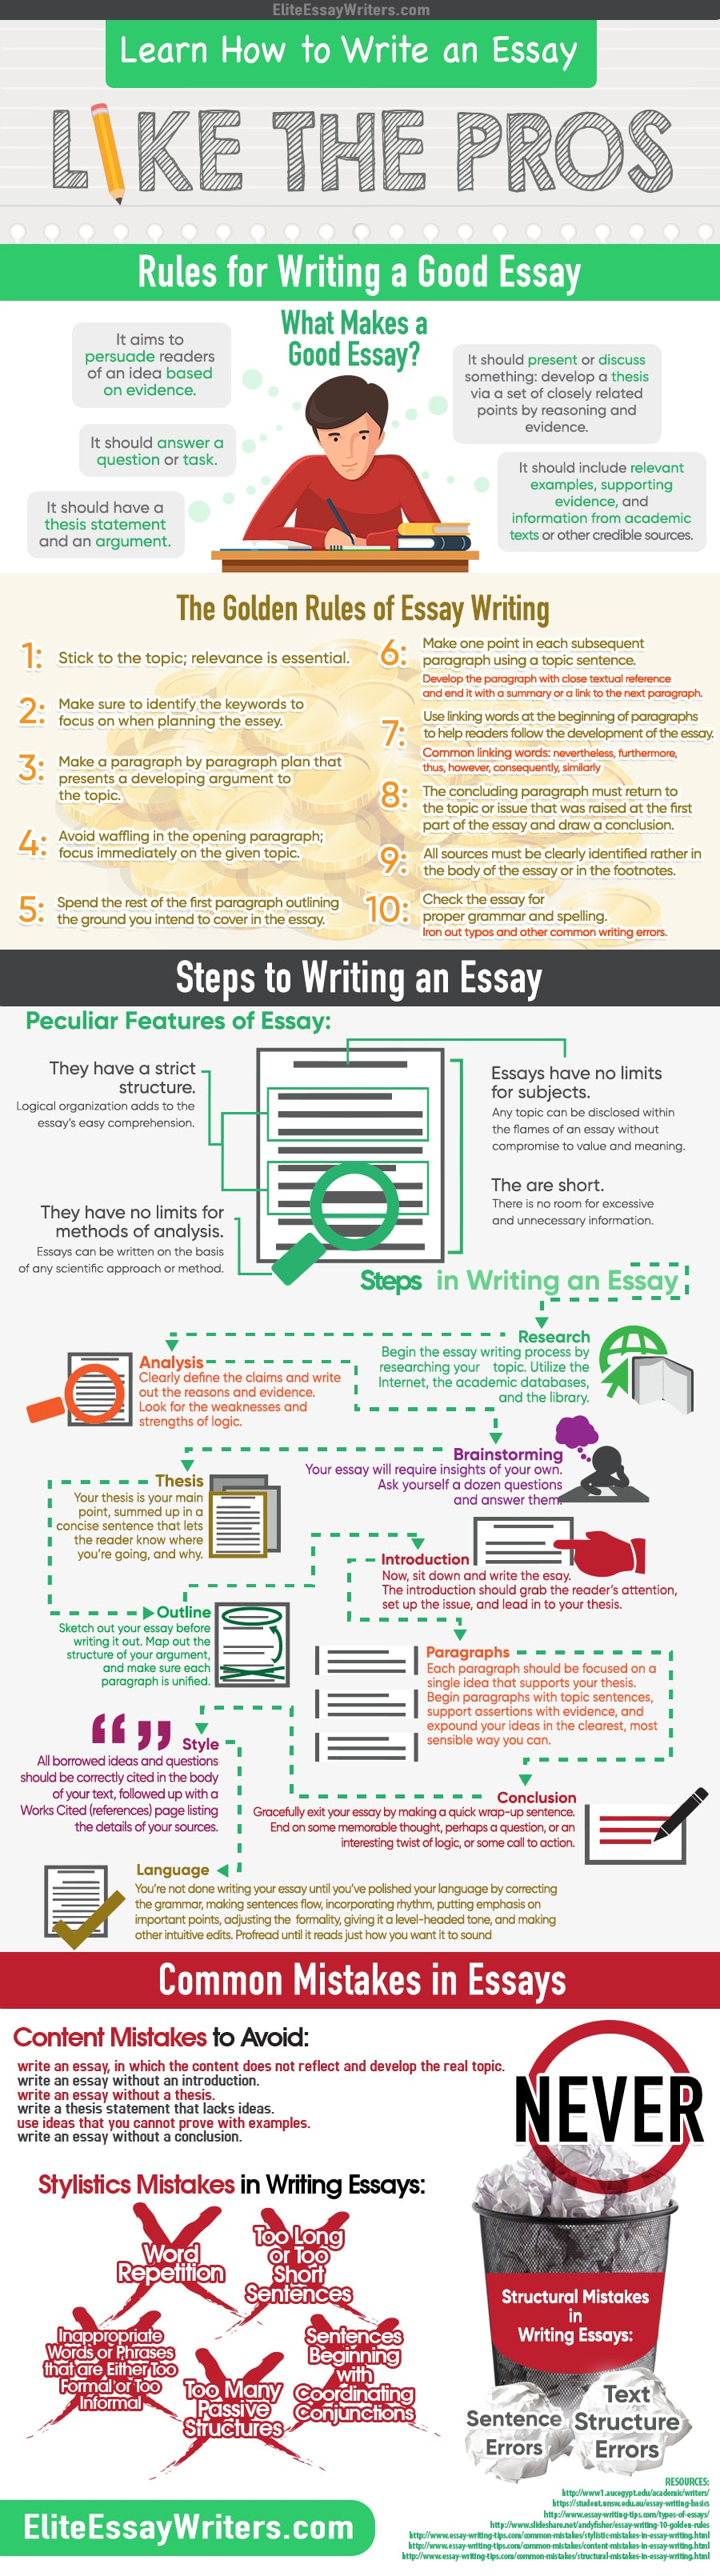 best essay writers.com Hire best essay writer from uk essay writing service special discount for first order: -50% off prices start at just £18 per page special november offer.